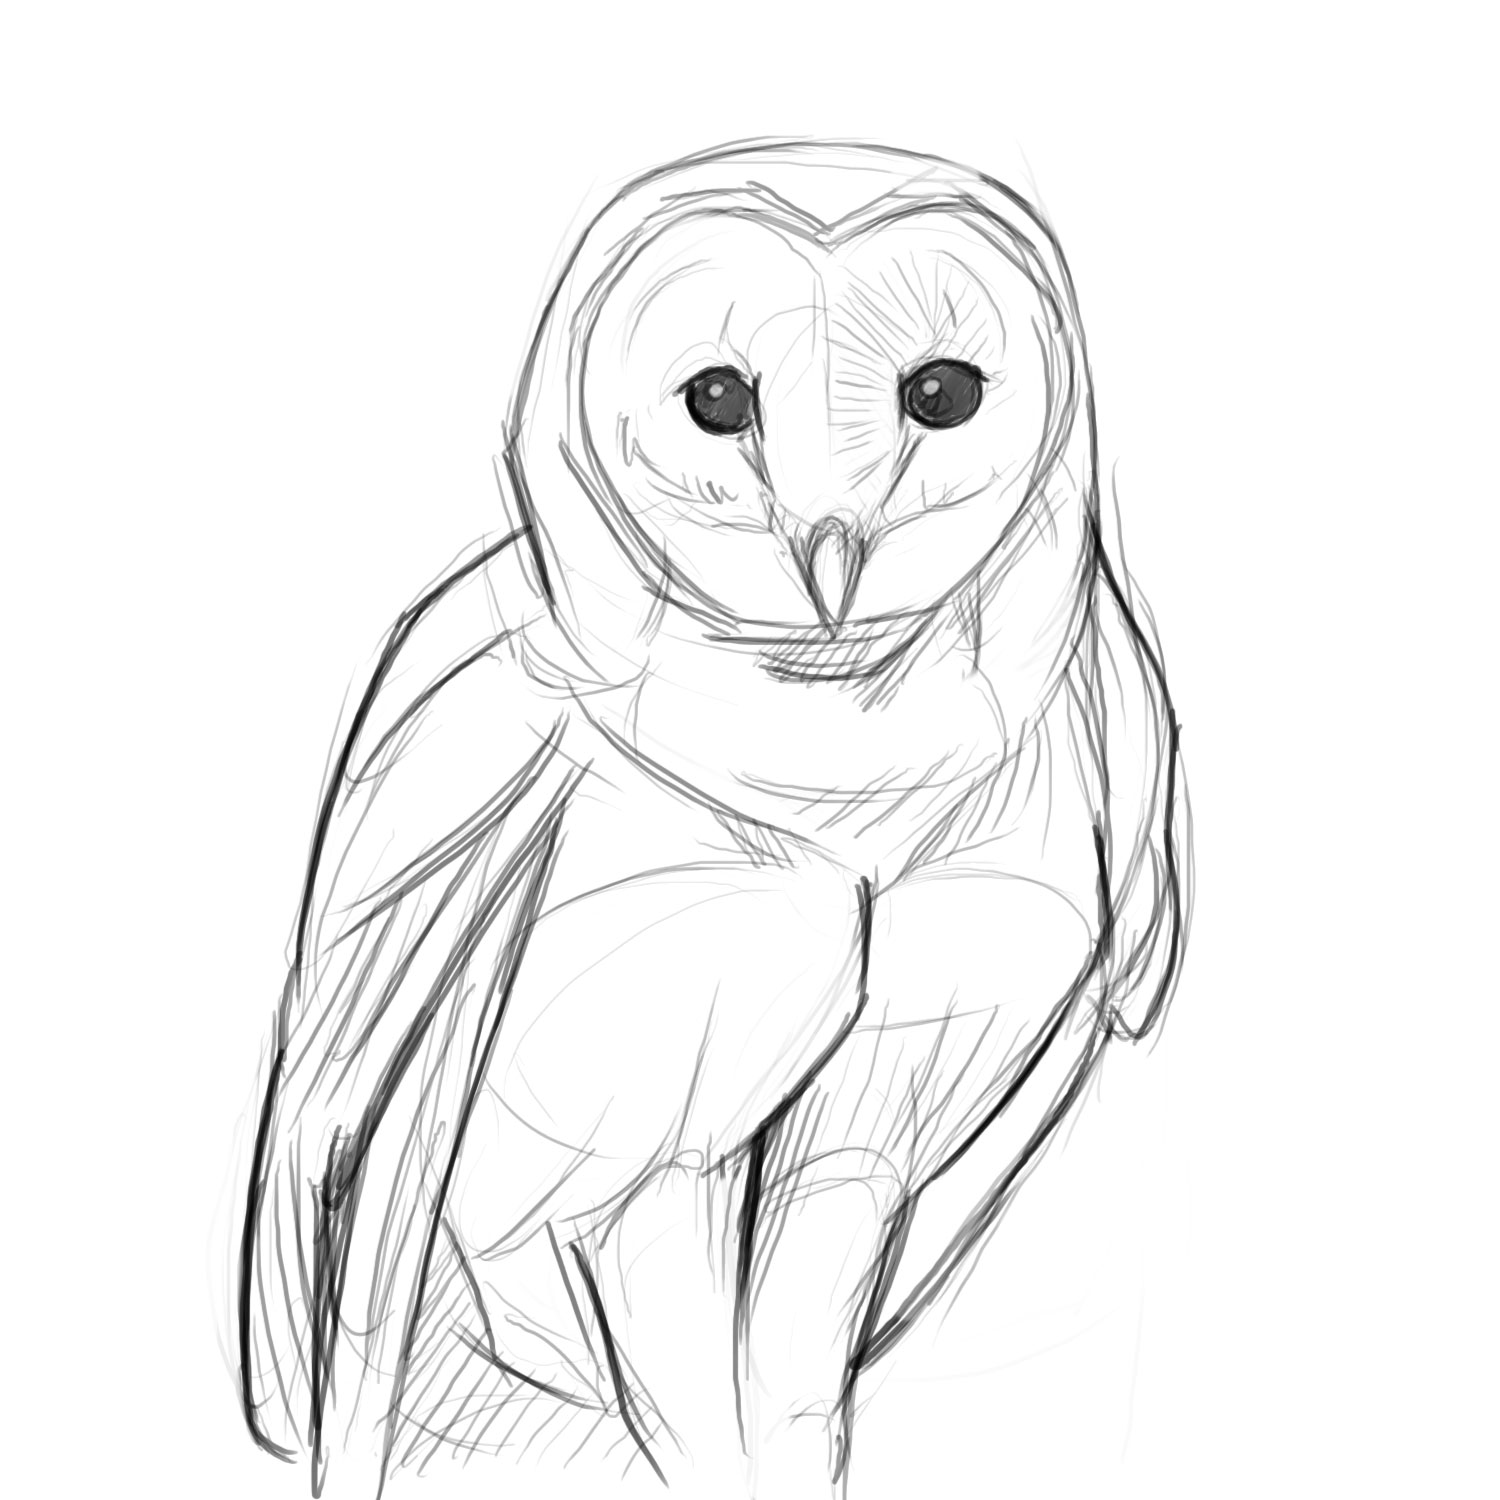 Owl Sketches Pictures to Pin on Pinterest - PinsDaddy